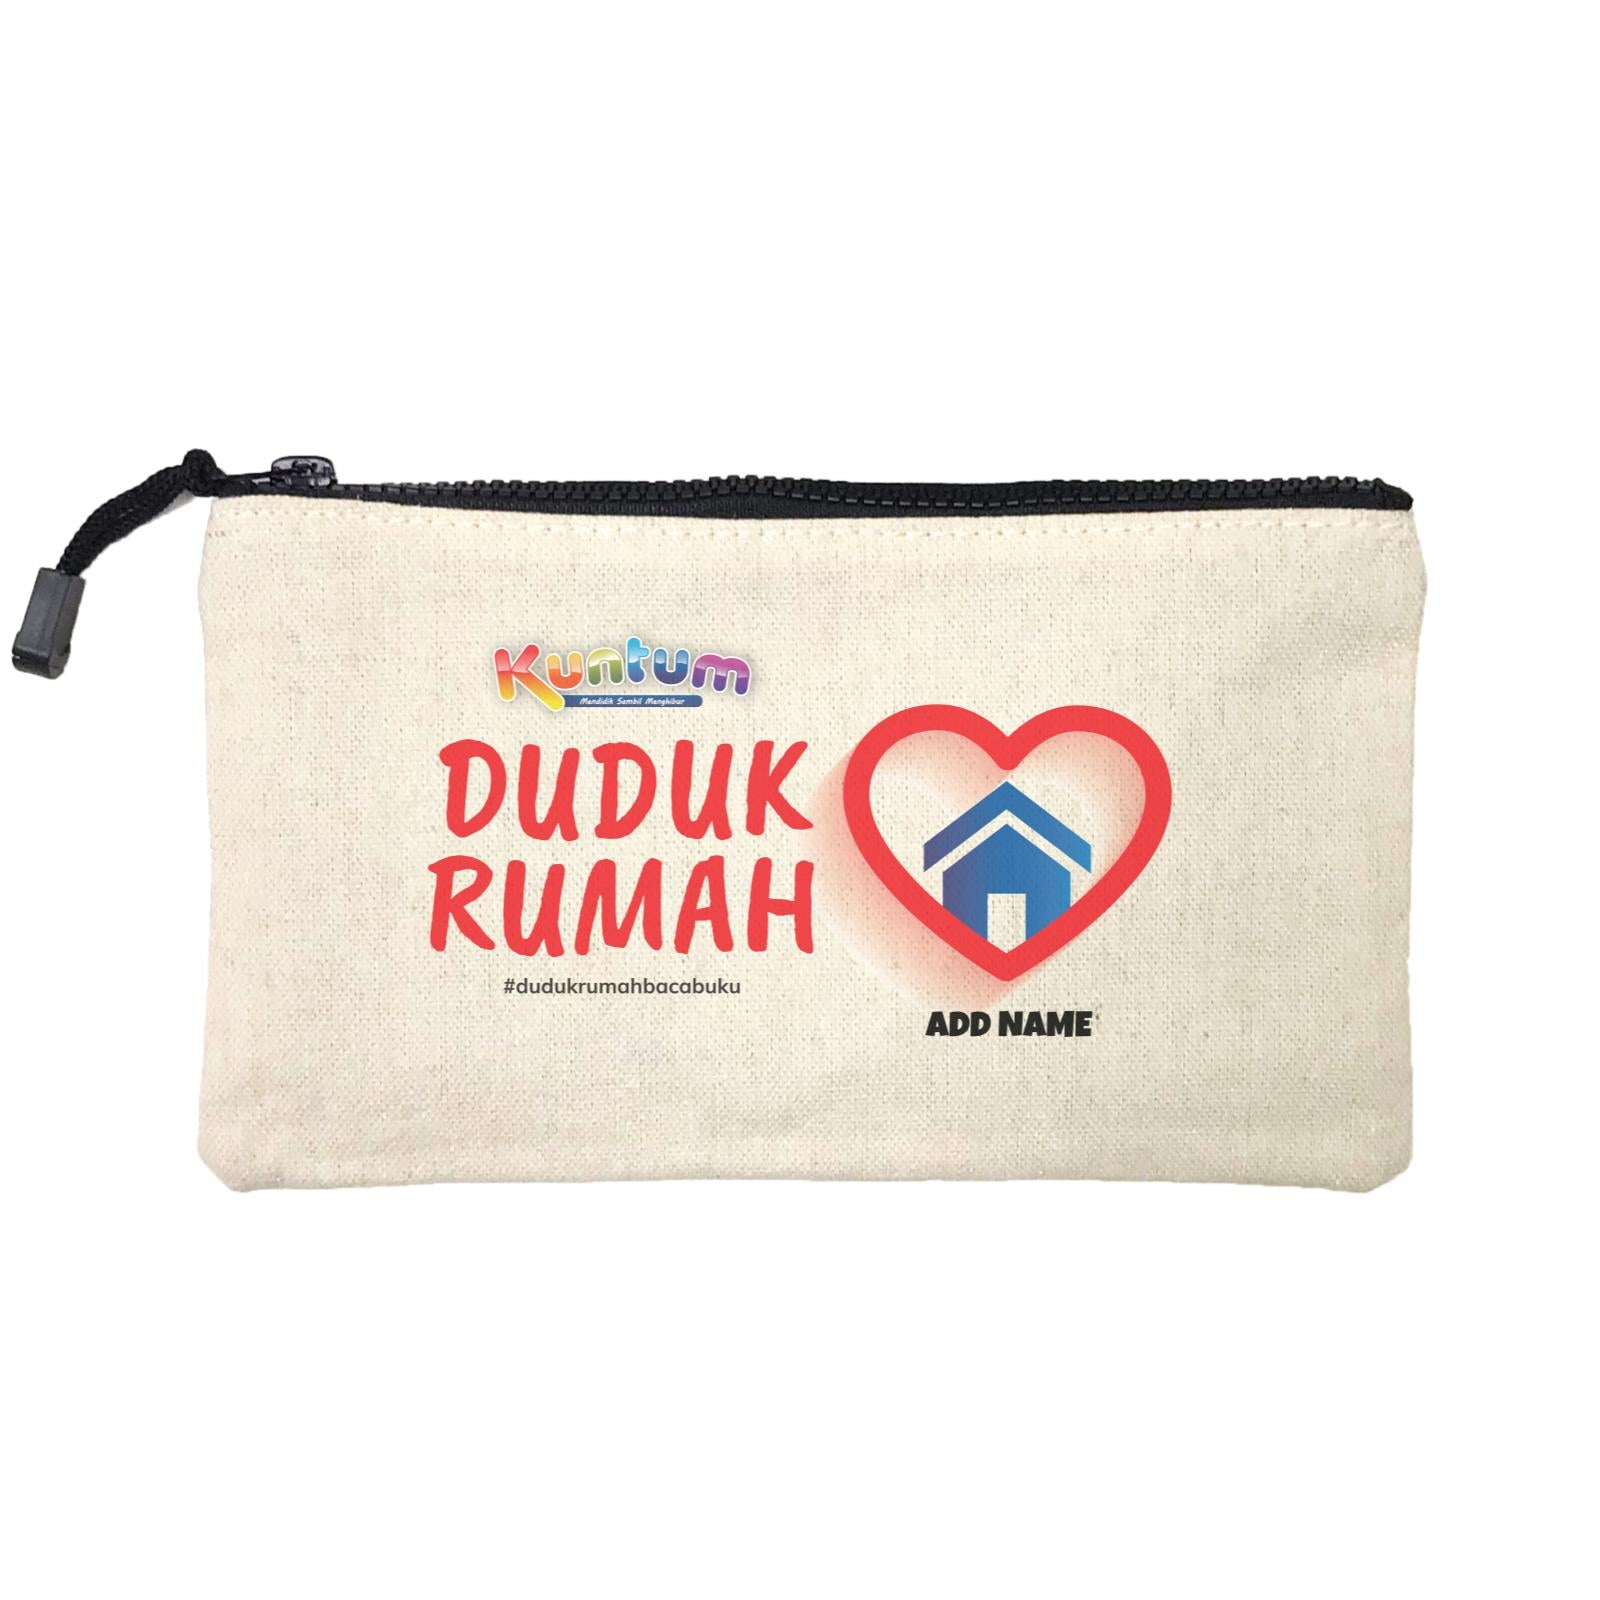 Duduk Rumah Stationery Pouch